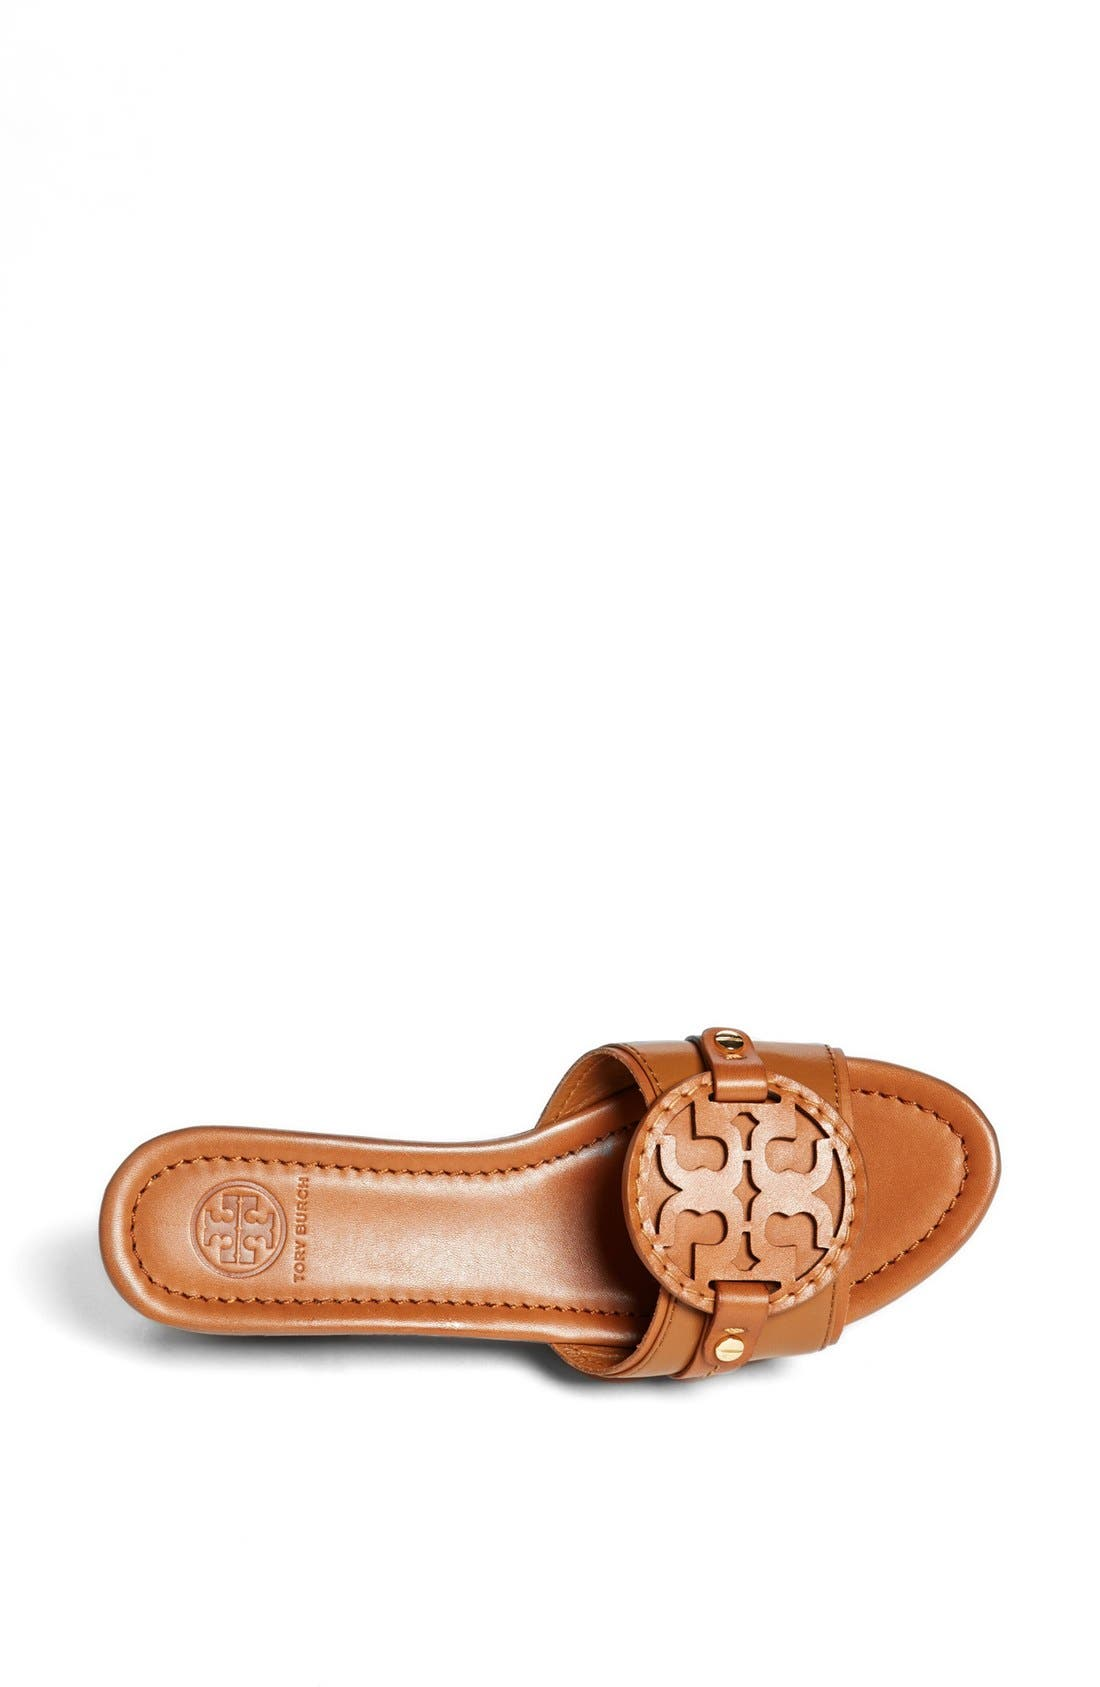 Alternate Image 3  - Tory Burch 'Madalena' Platform Slide Sandal (Online Only)